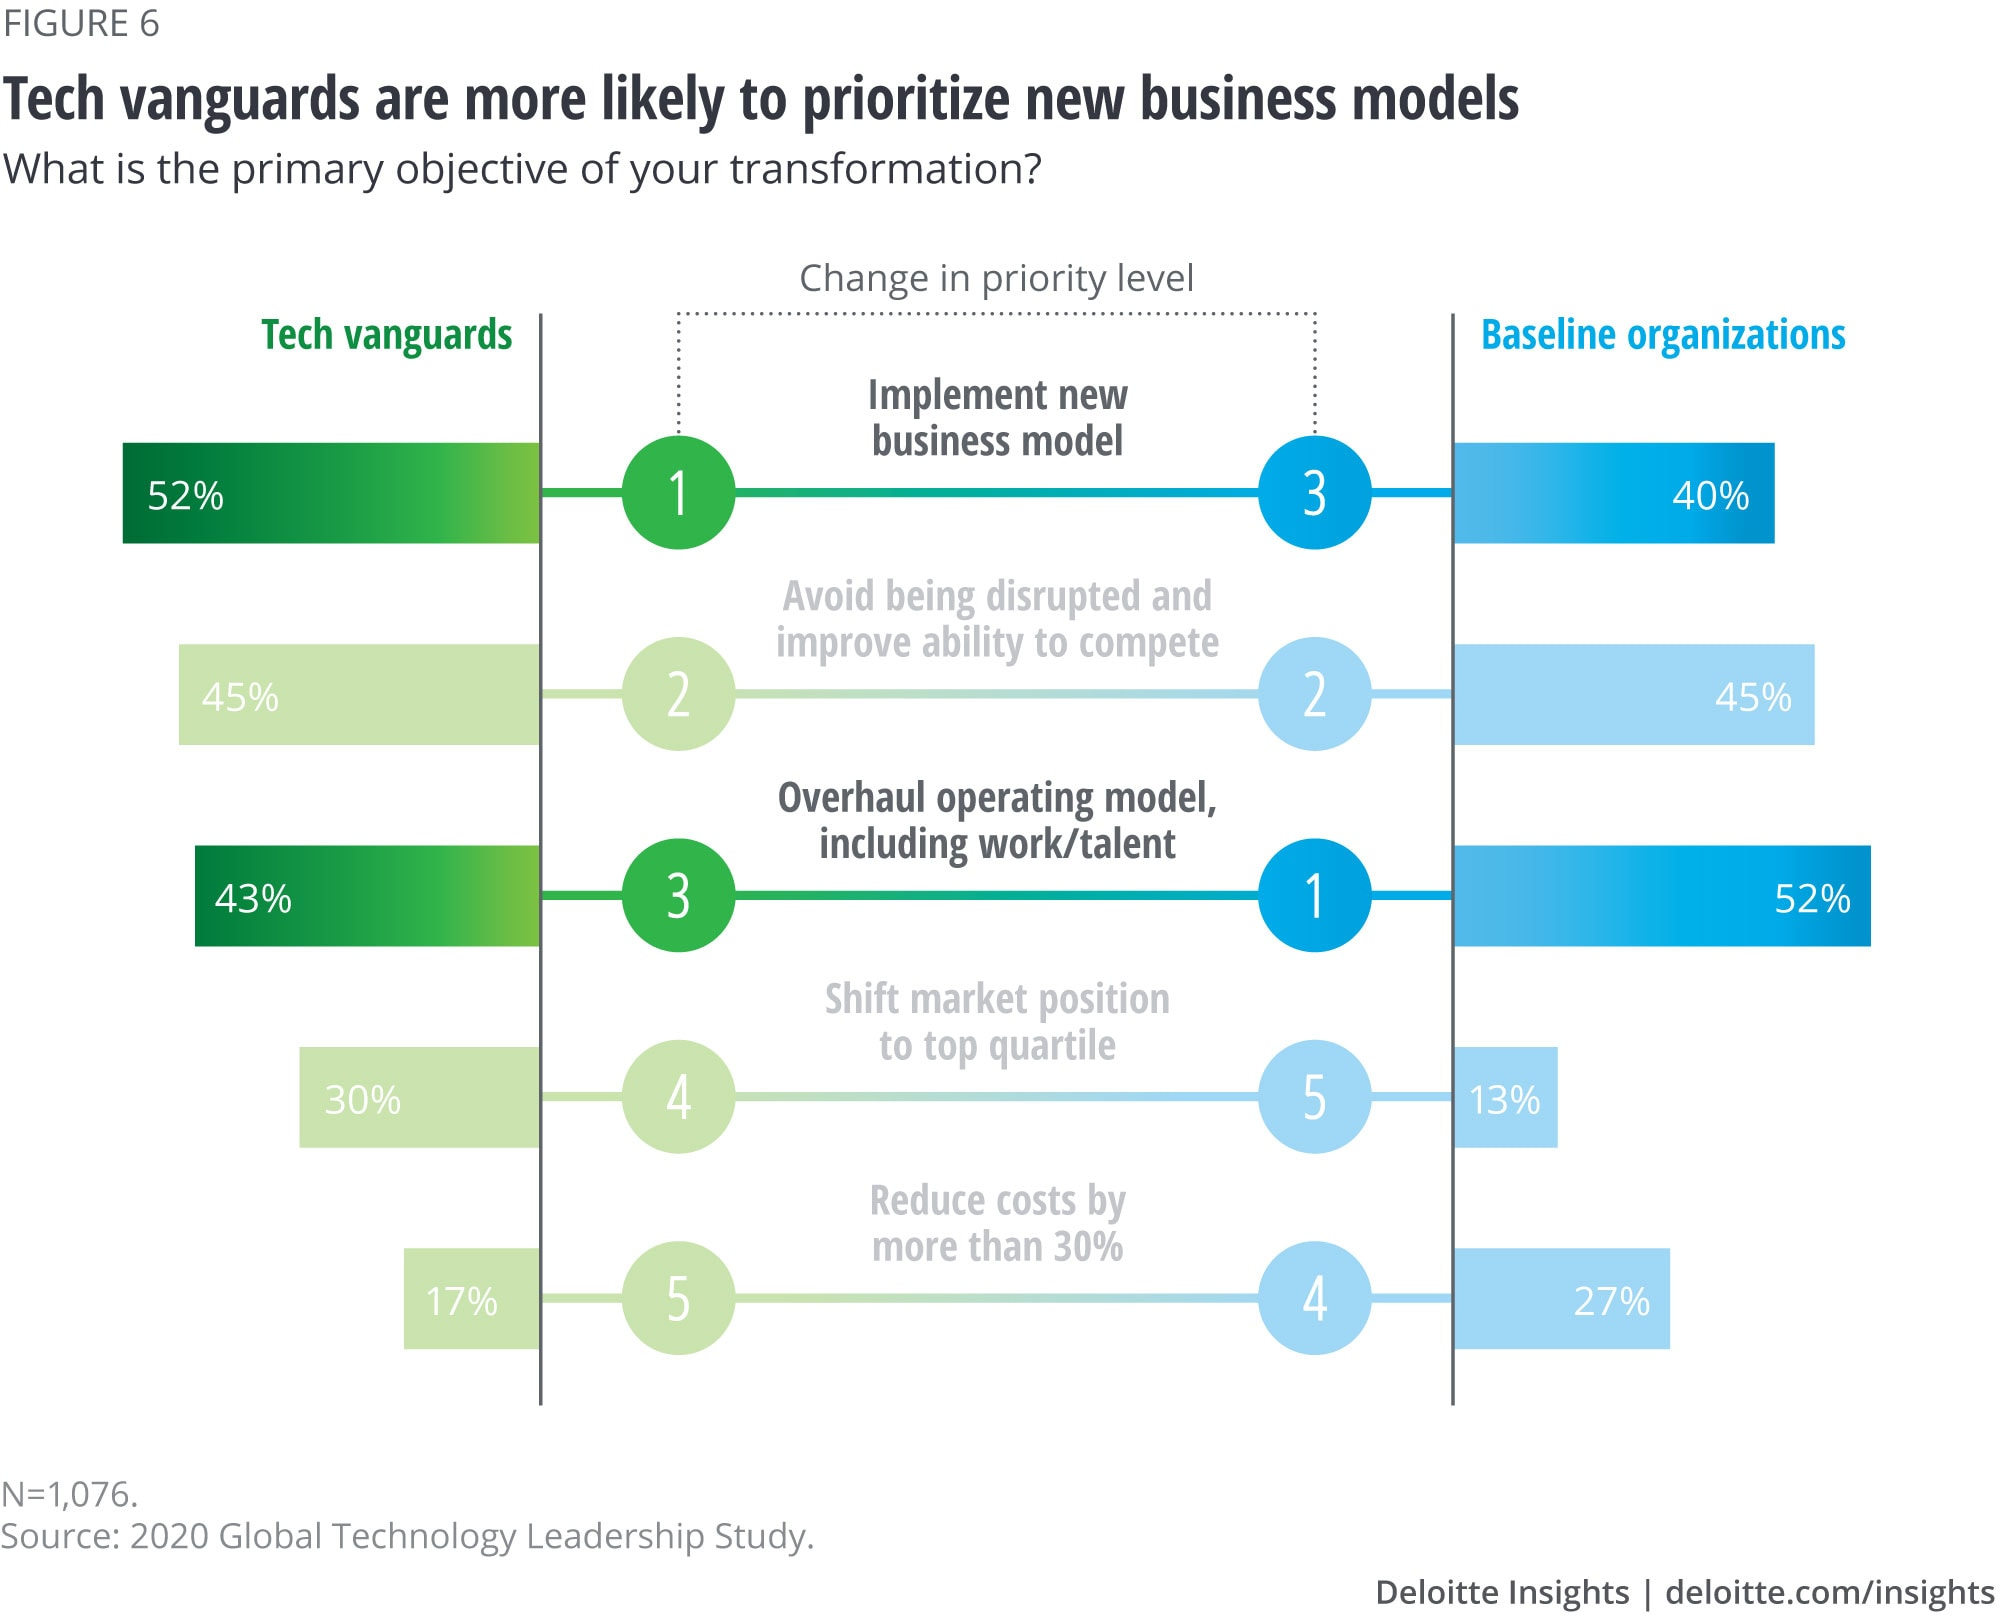 Tech vanguards are more likely to prioritize new business models